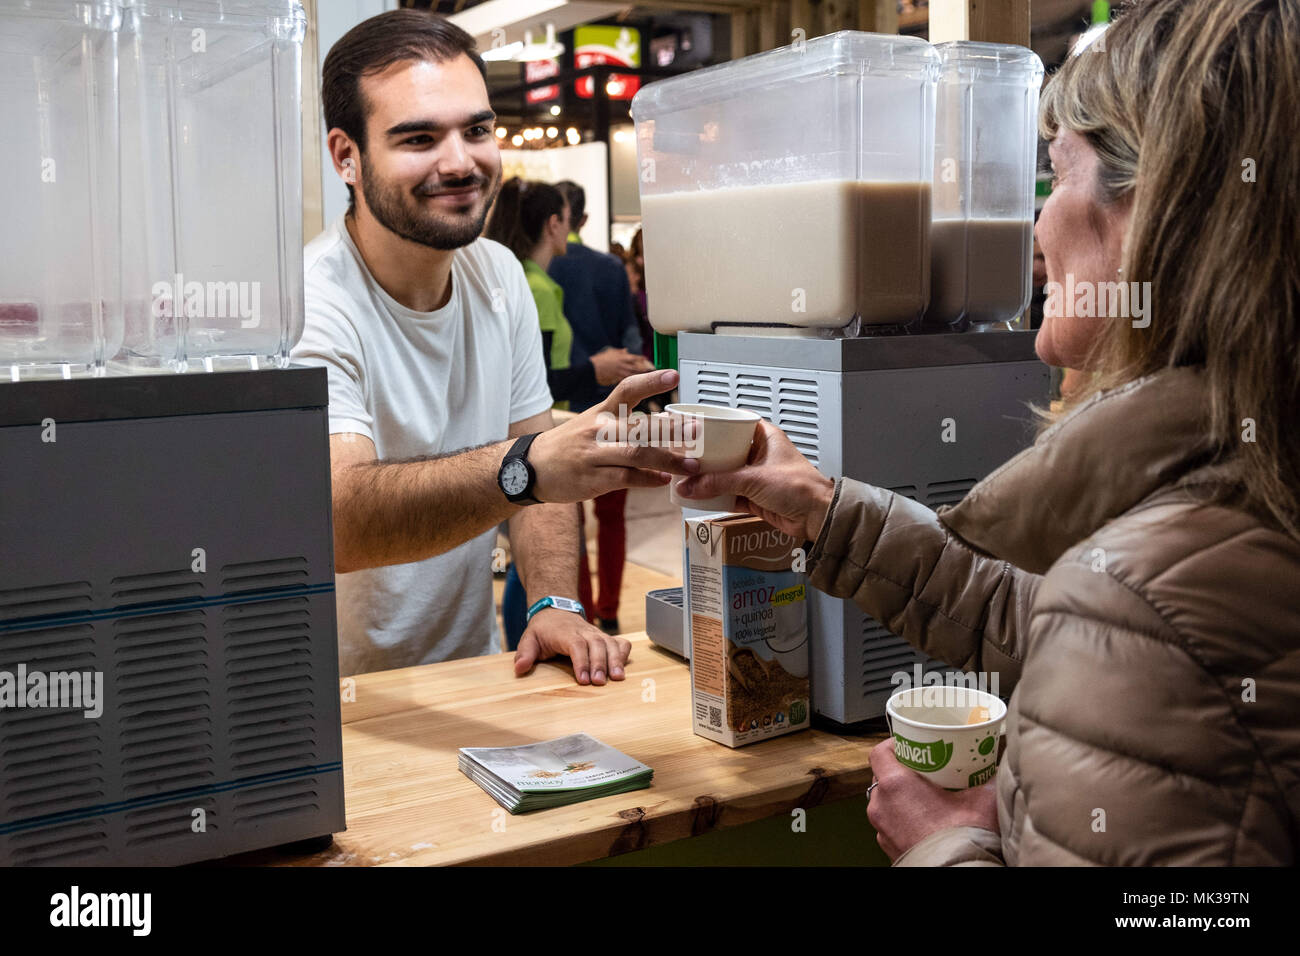 May 6, 2018 - Barcelona, Catalonia, Spain - Tasting of vegetable smoothies at the Organic Products Fair and Responsible Consumption in Barcelona. BioCultura, the Organic Products Fair and Responsible Consumption celebrates its 25th anniversary. It will bring together over 700 exhibitors dedicated to the sectors of food bio, organic cosmetics, sustainable fashion, home safe, responsible tourism, crafts and NGOs. Parallel to the exhibition more than 400 activities will be held and is expected to exceed 72,000 visitors. It will be held from 3 to 6 May at the Palau Sant Jordi in Barcelona. (Credit Stock Photo